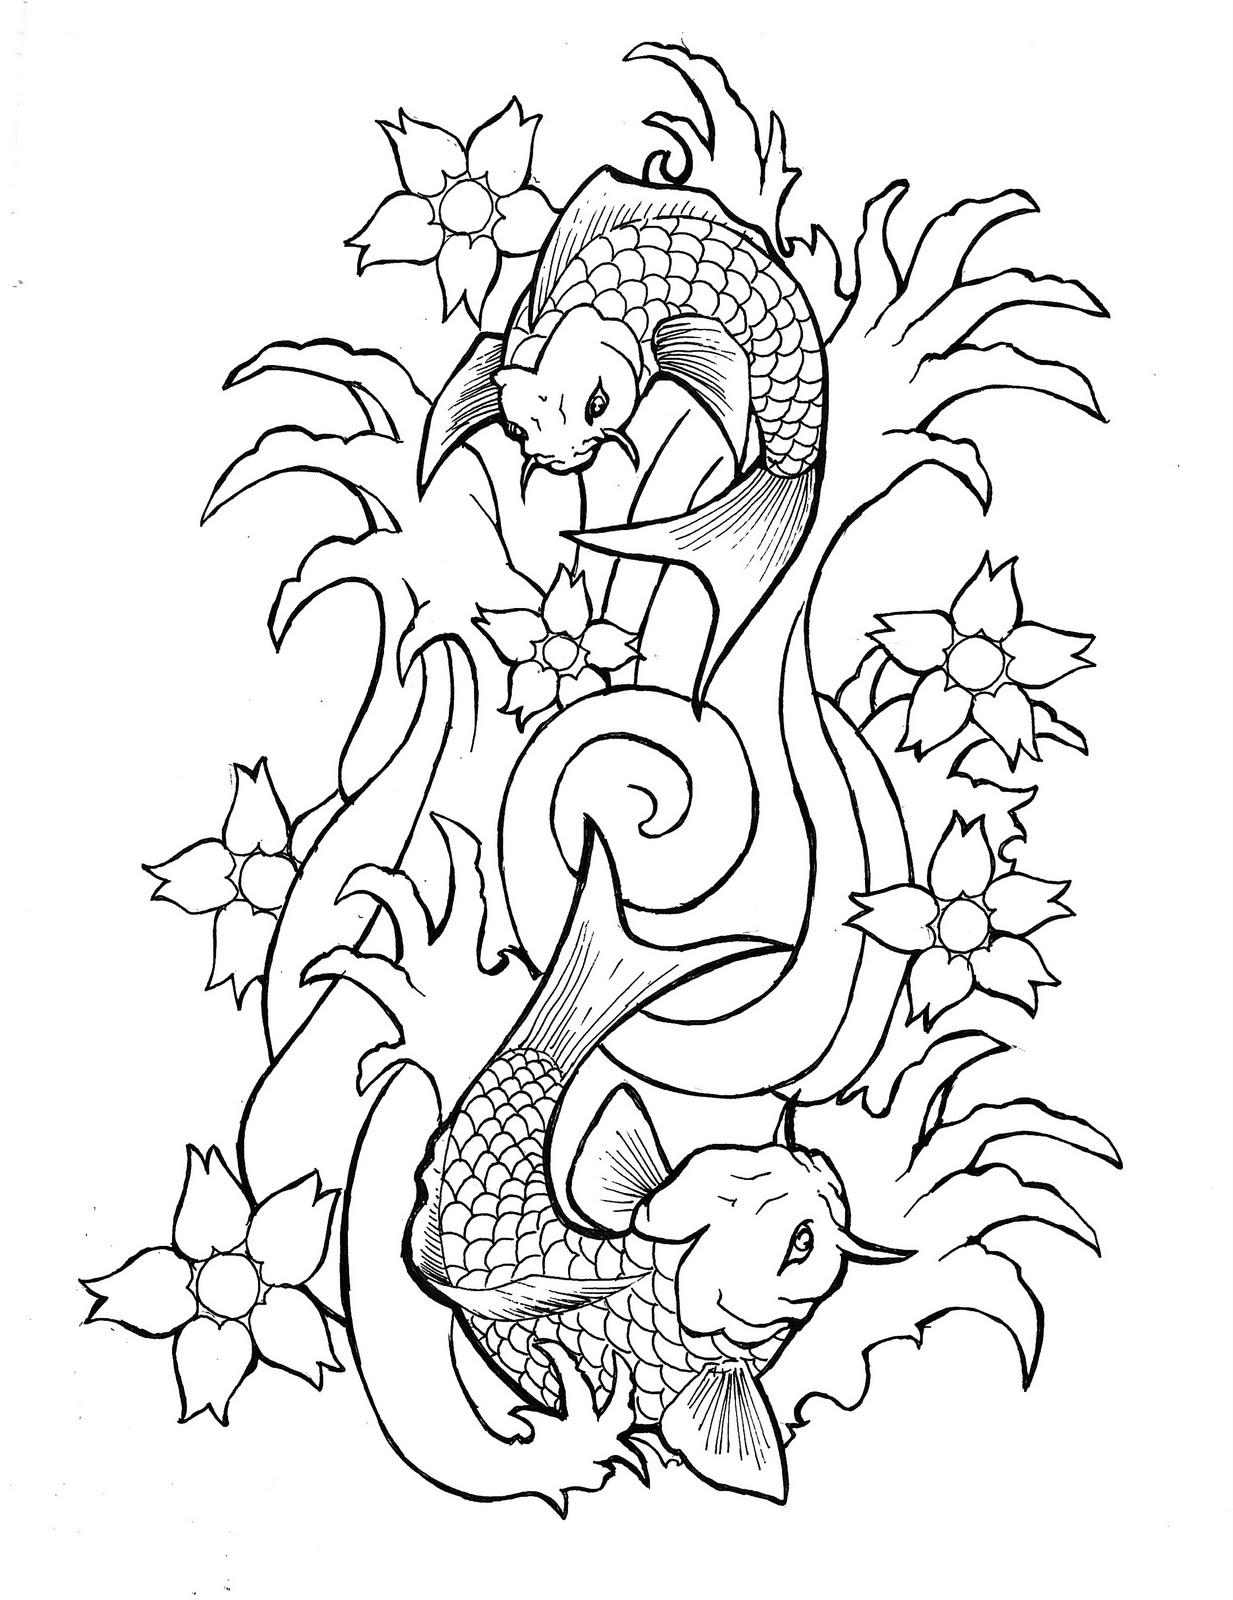 Koi fish drawing outline - photo#20